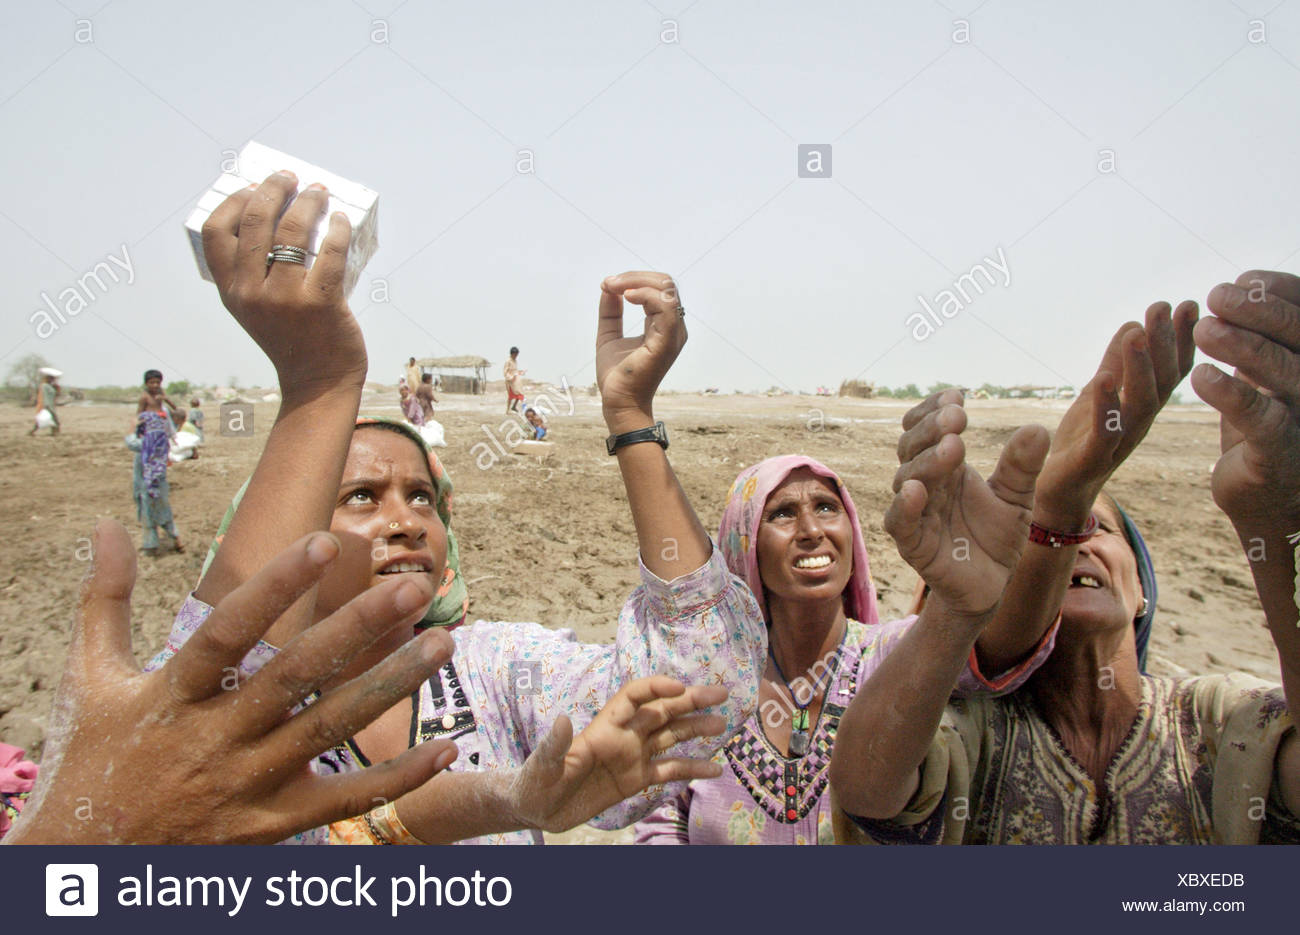 Distribution of relief supplies to flood victims, Shadhat Kot, Pakistan - Stock Image